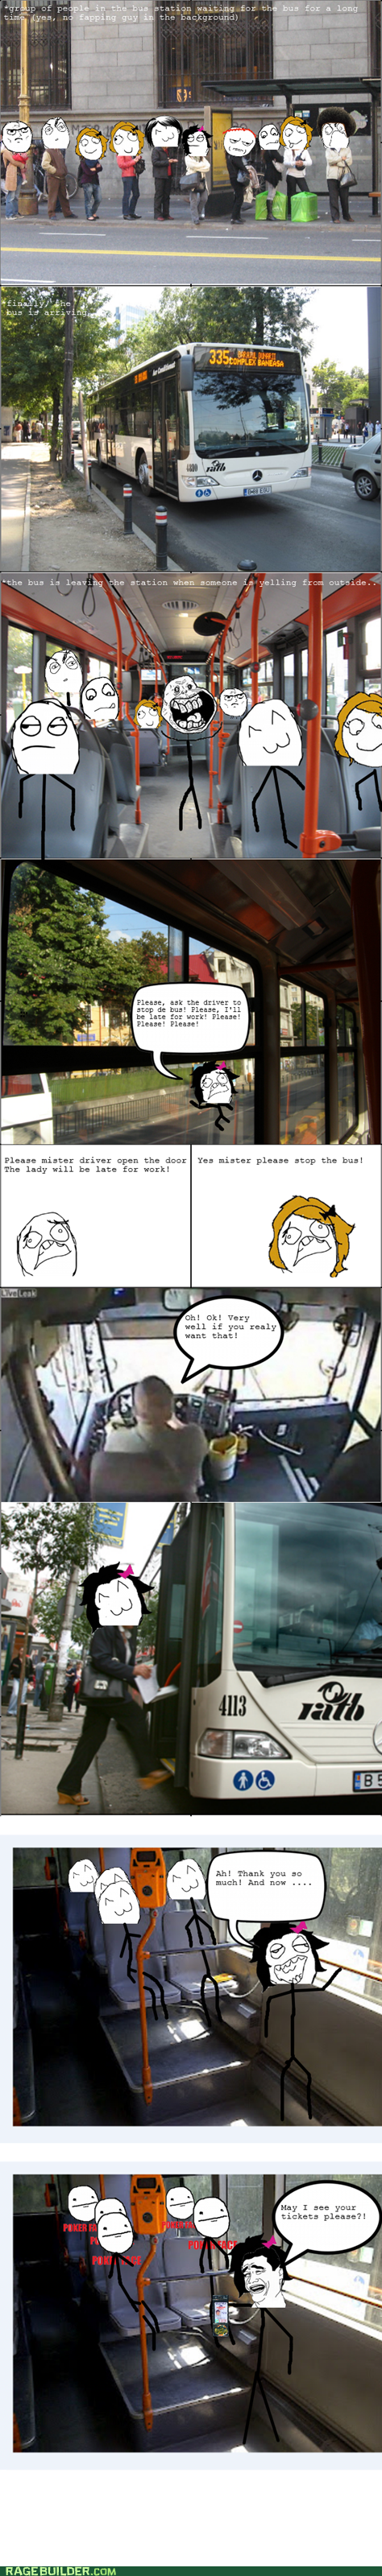 bus rage,taking the bus,metro bus,bus